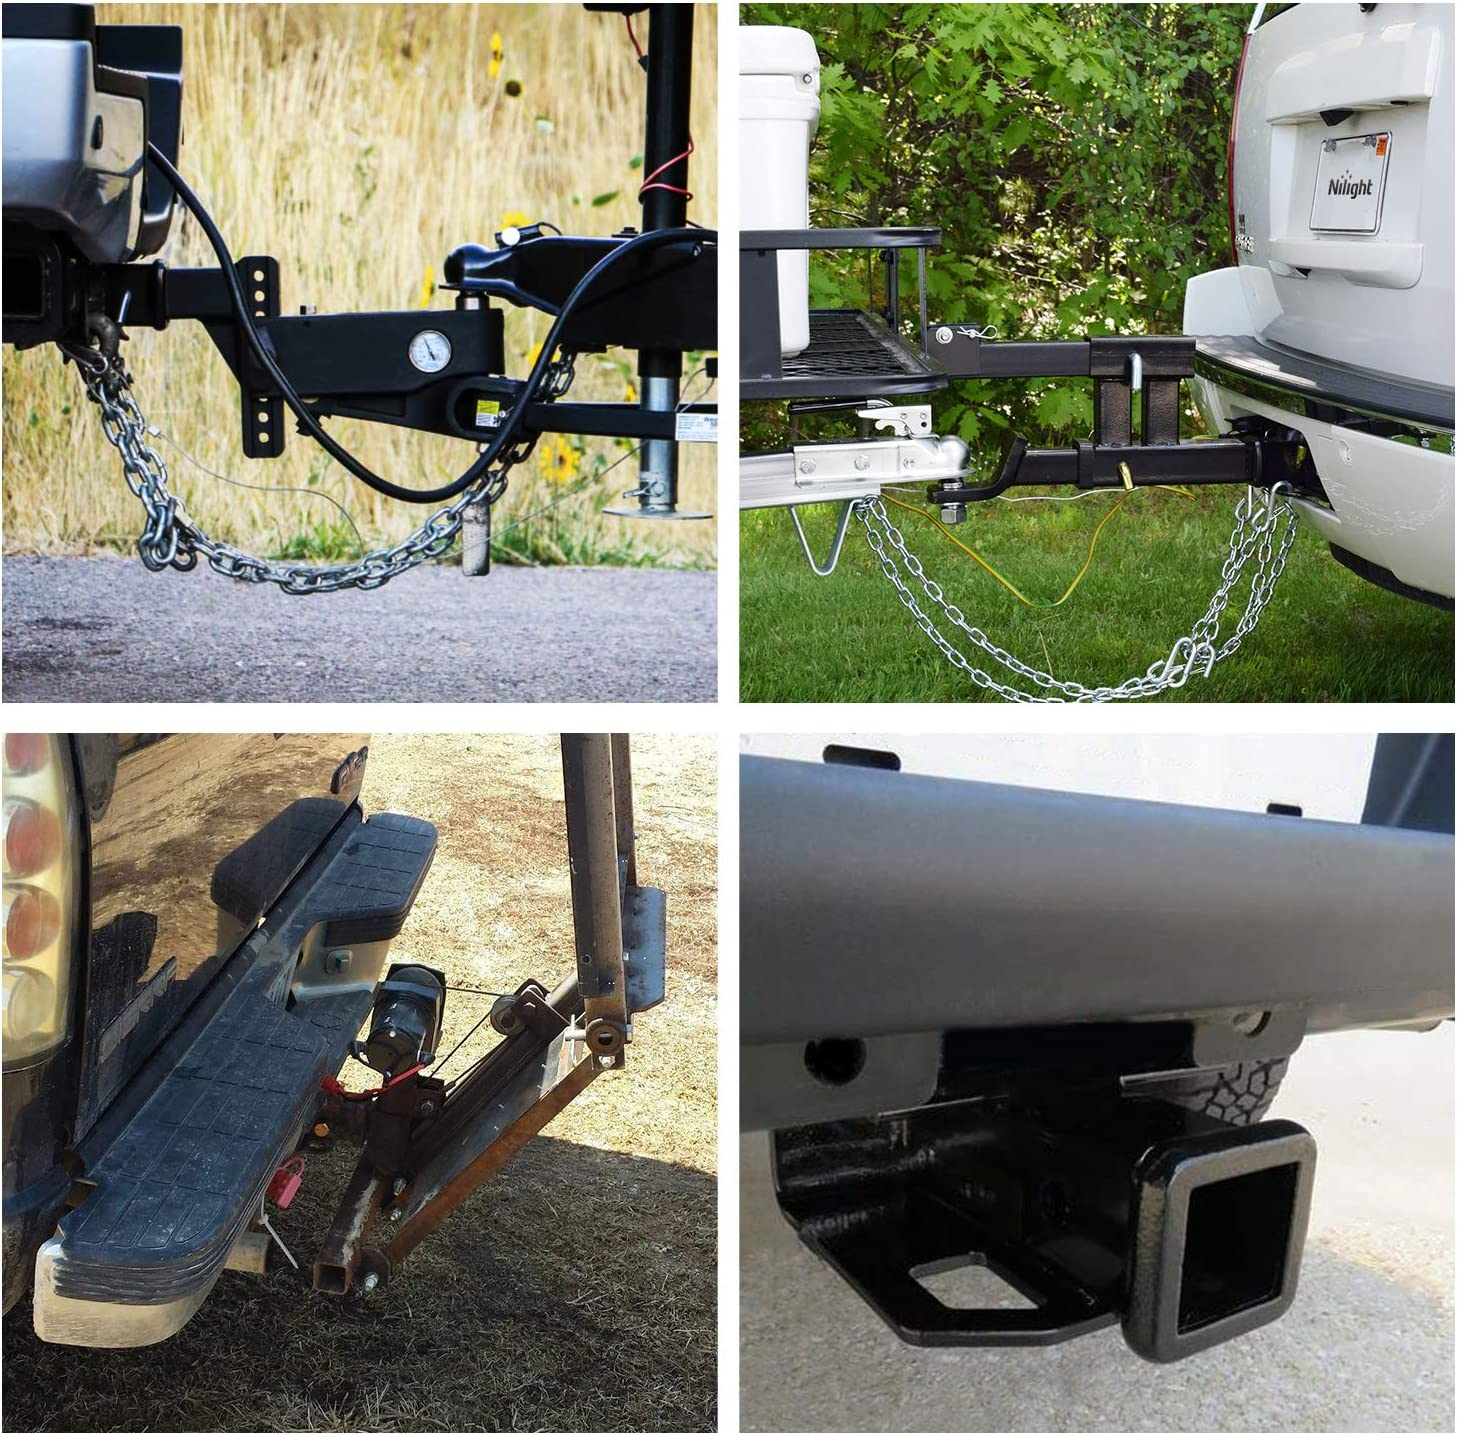 Nilight Compatible for 2007-2018 Jeep Wrangler JK 4 Door /& 2 Door Unlimited Exclude JL Models JK-61A 2 inch Rear Bumper Tow Trailer Hitch Receiver Kit w//4-Pin Wiring Harness